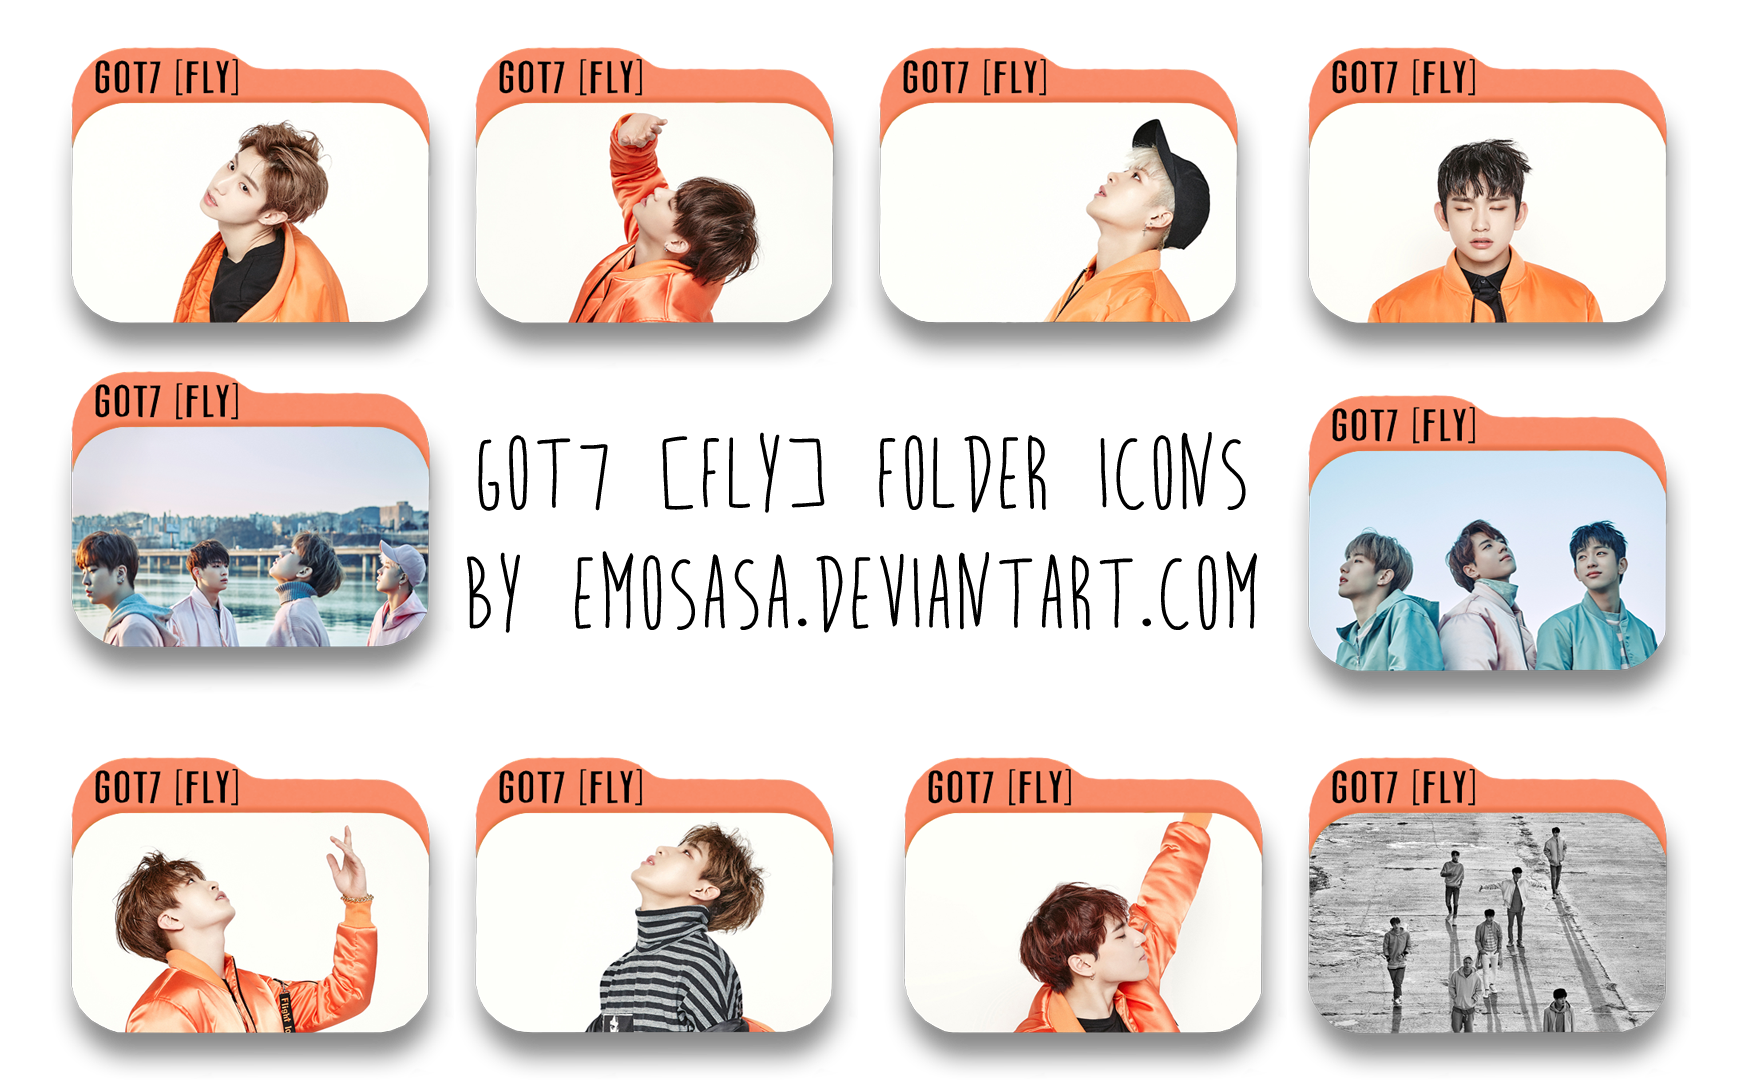 Got7 fly sticker k-pop flies 743*1076 transprent png free.